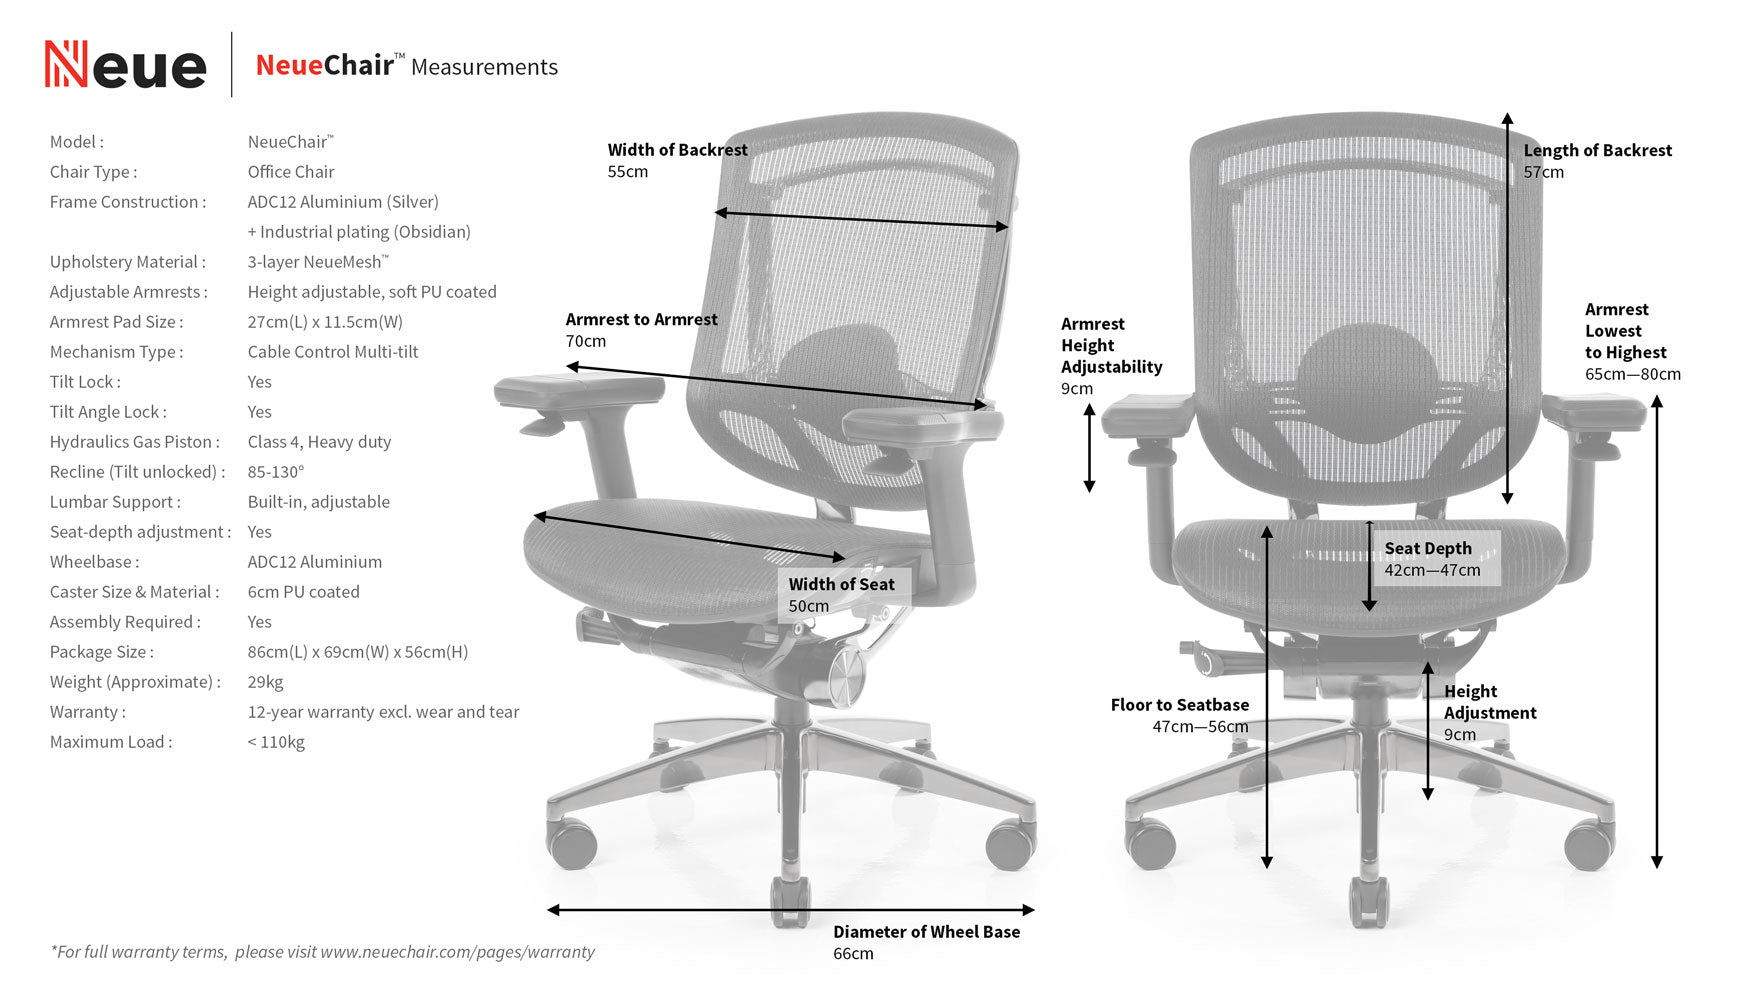 NeueChair Measurements